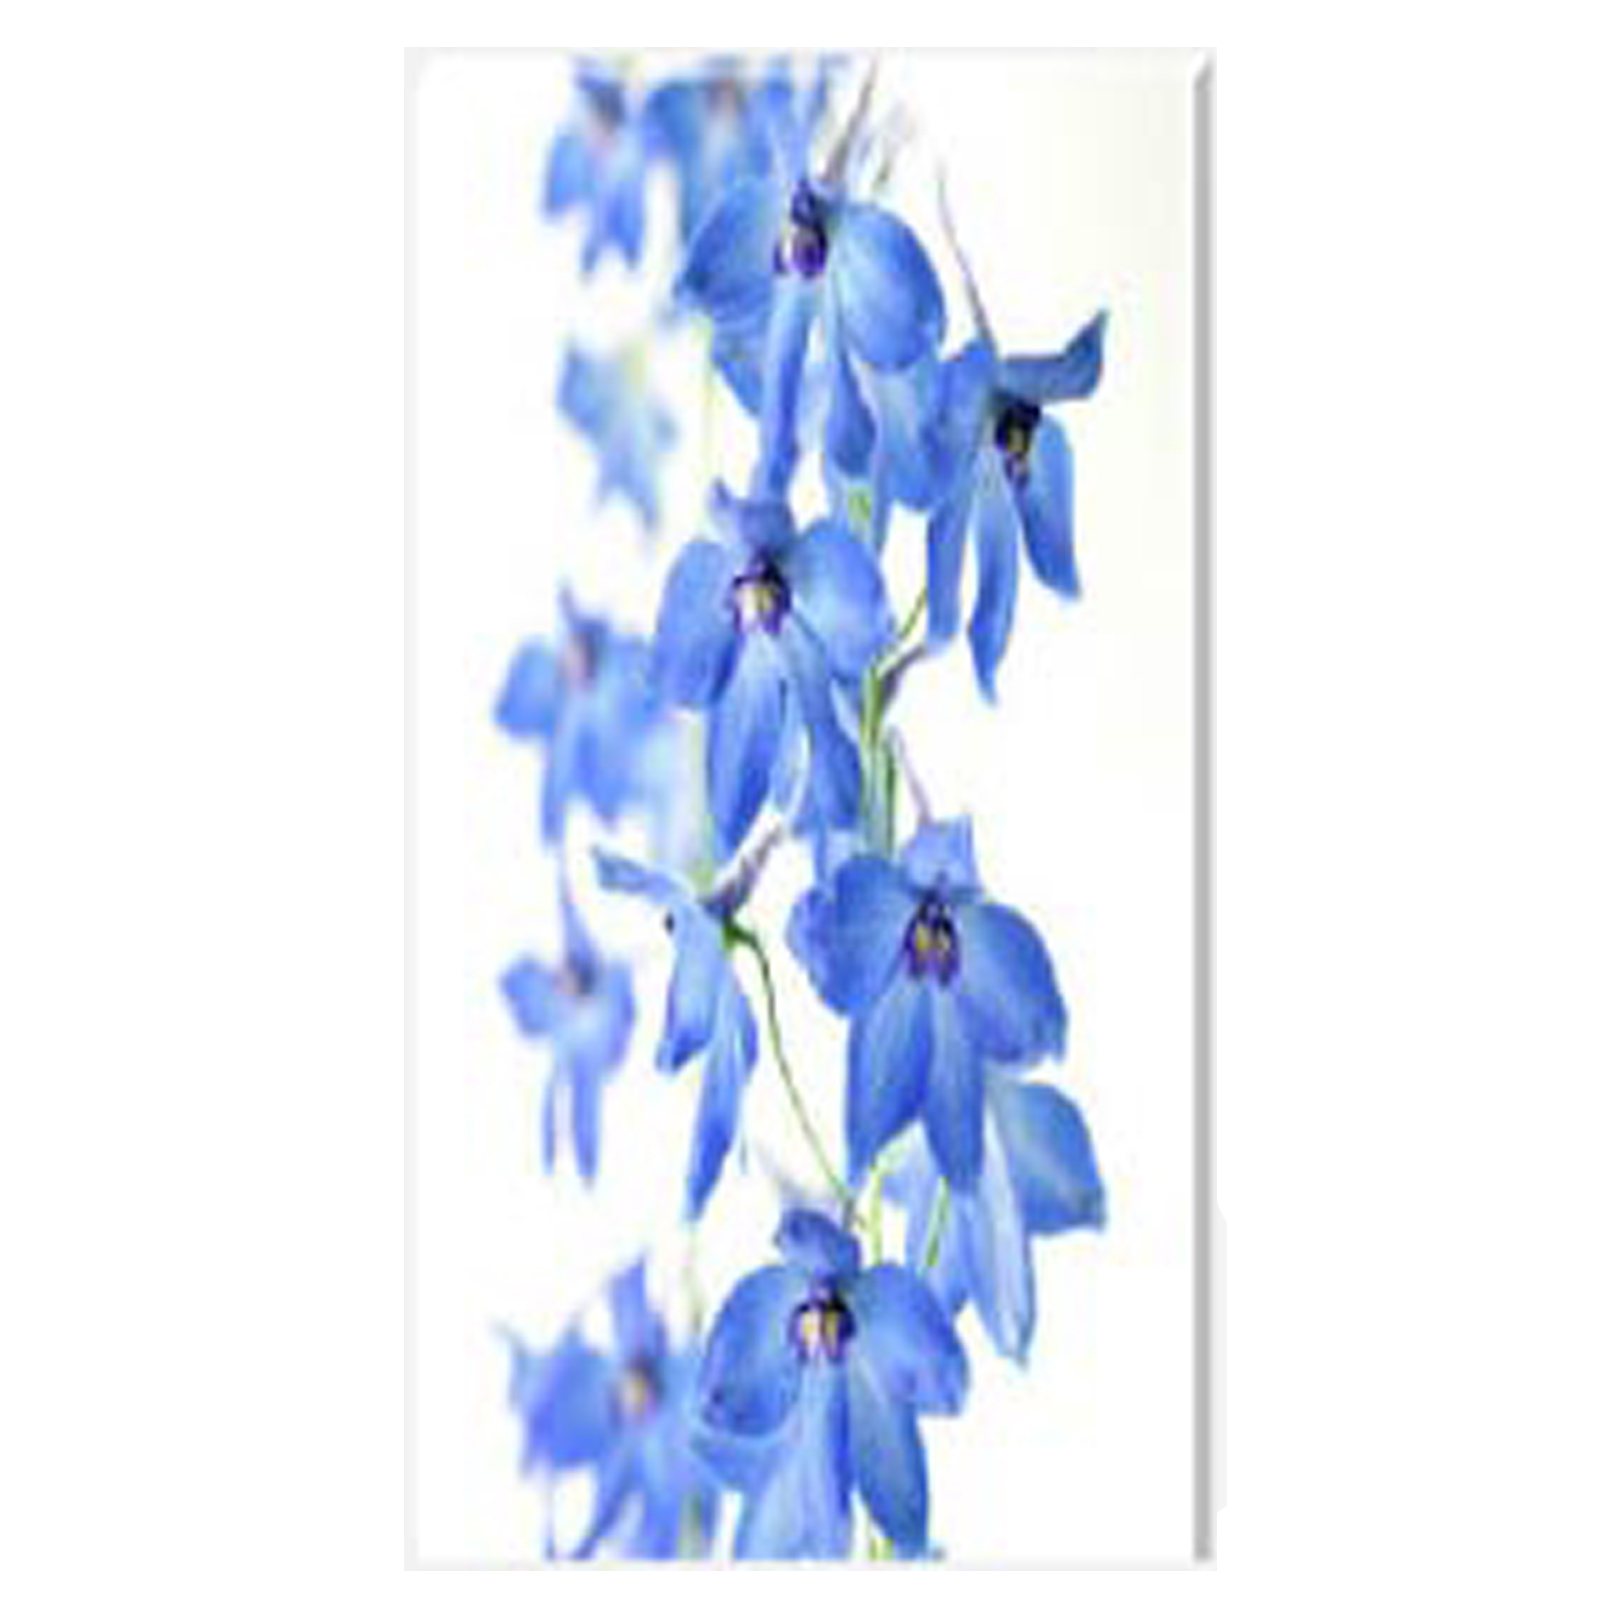 Delphinium I Stretched Canvas by Celia Henderson LPRS